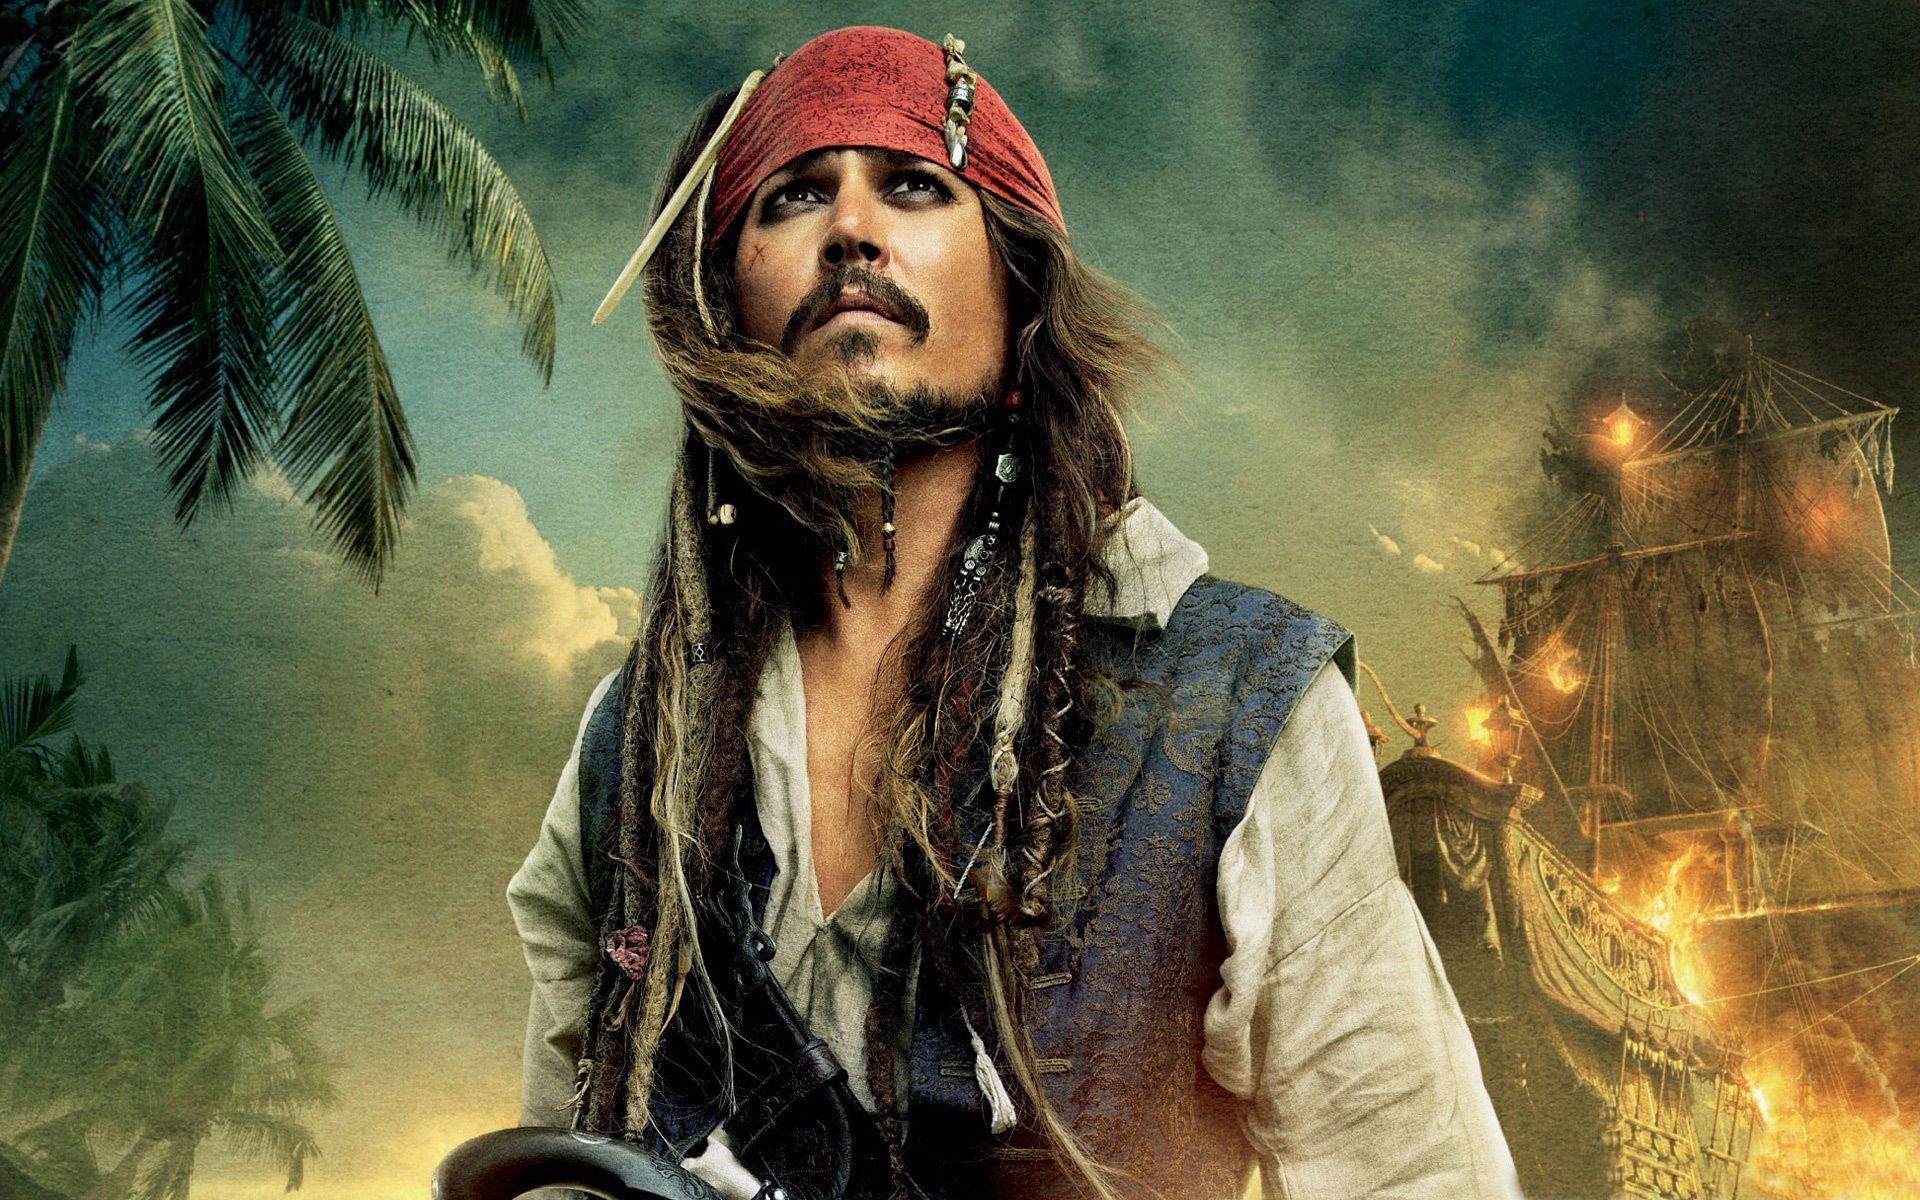 Captain Jack Sparrow Hd Wallpaper Free Your Hd Wallpaper Id62248 Jack Sparrow Wallpaper Johnny Depp Captain Jack Sparrow